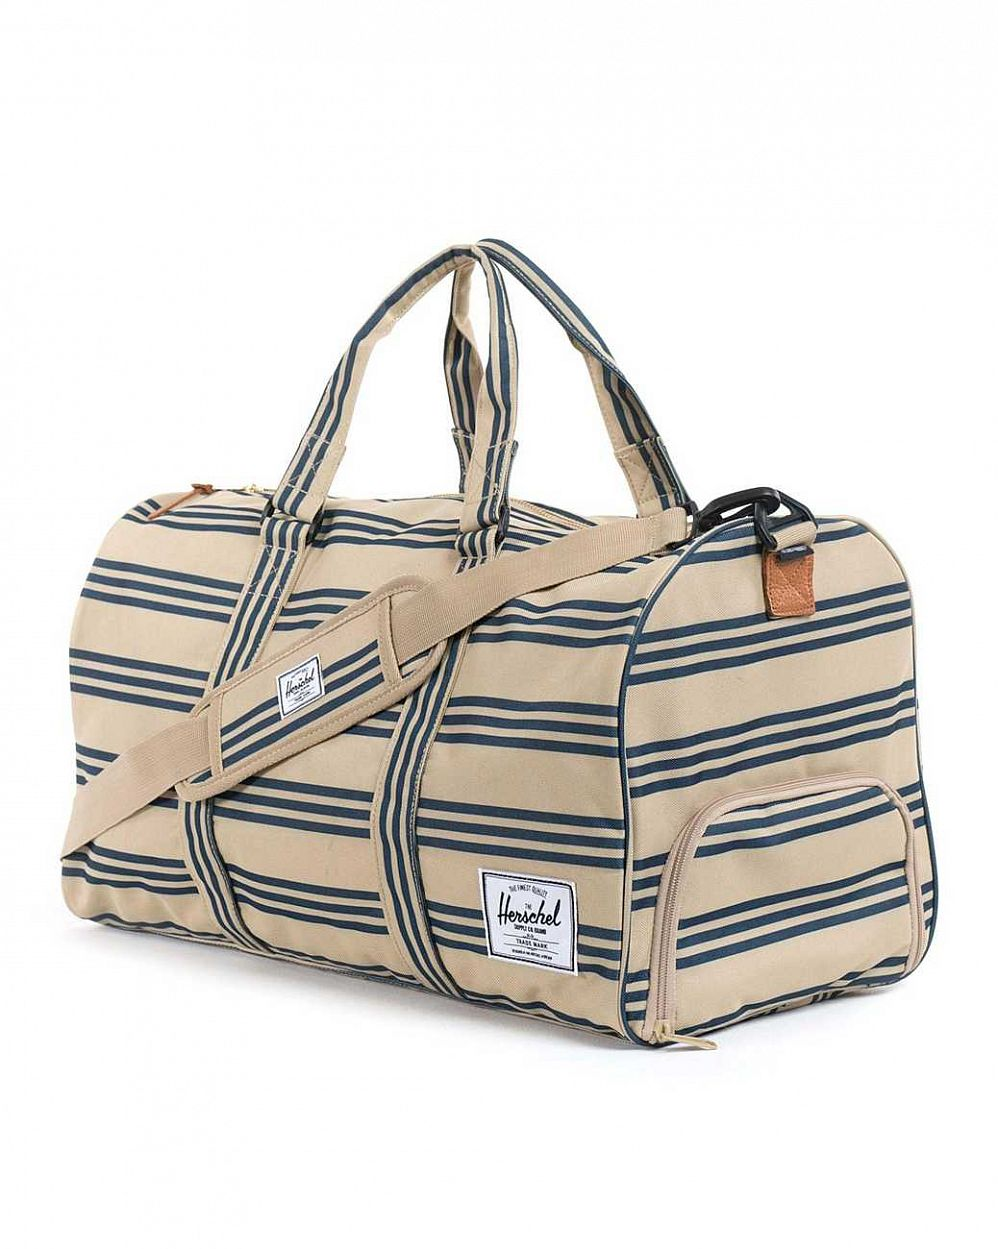 Сумка спортивная Herschel Novel Canvas Navy Khaki Stripe отзывы